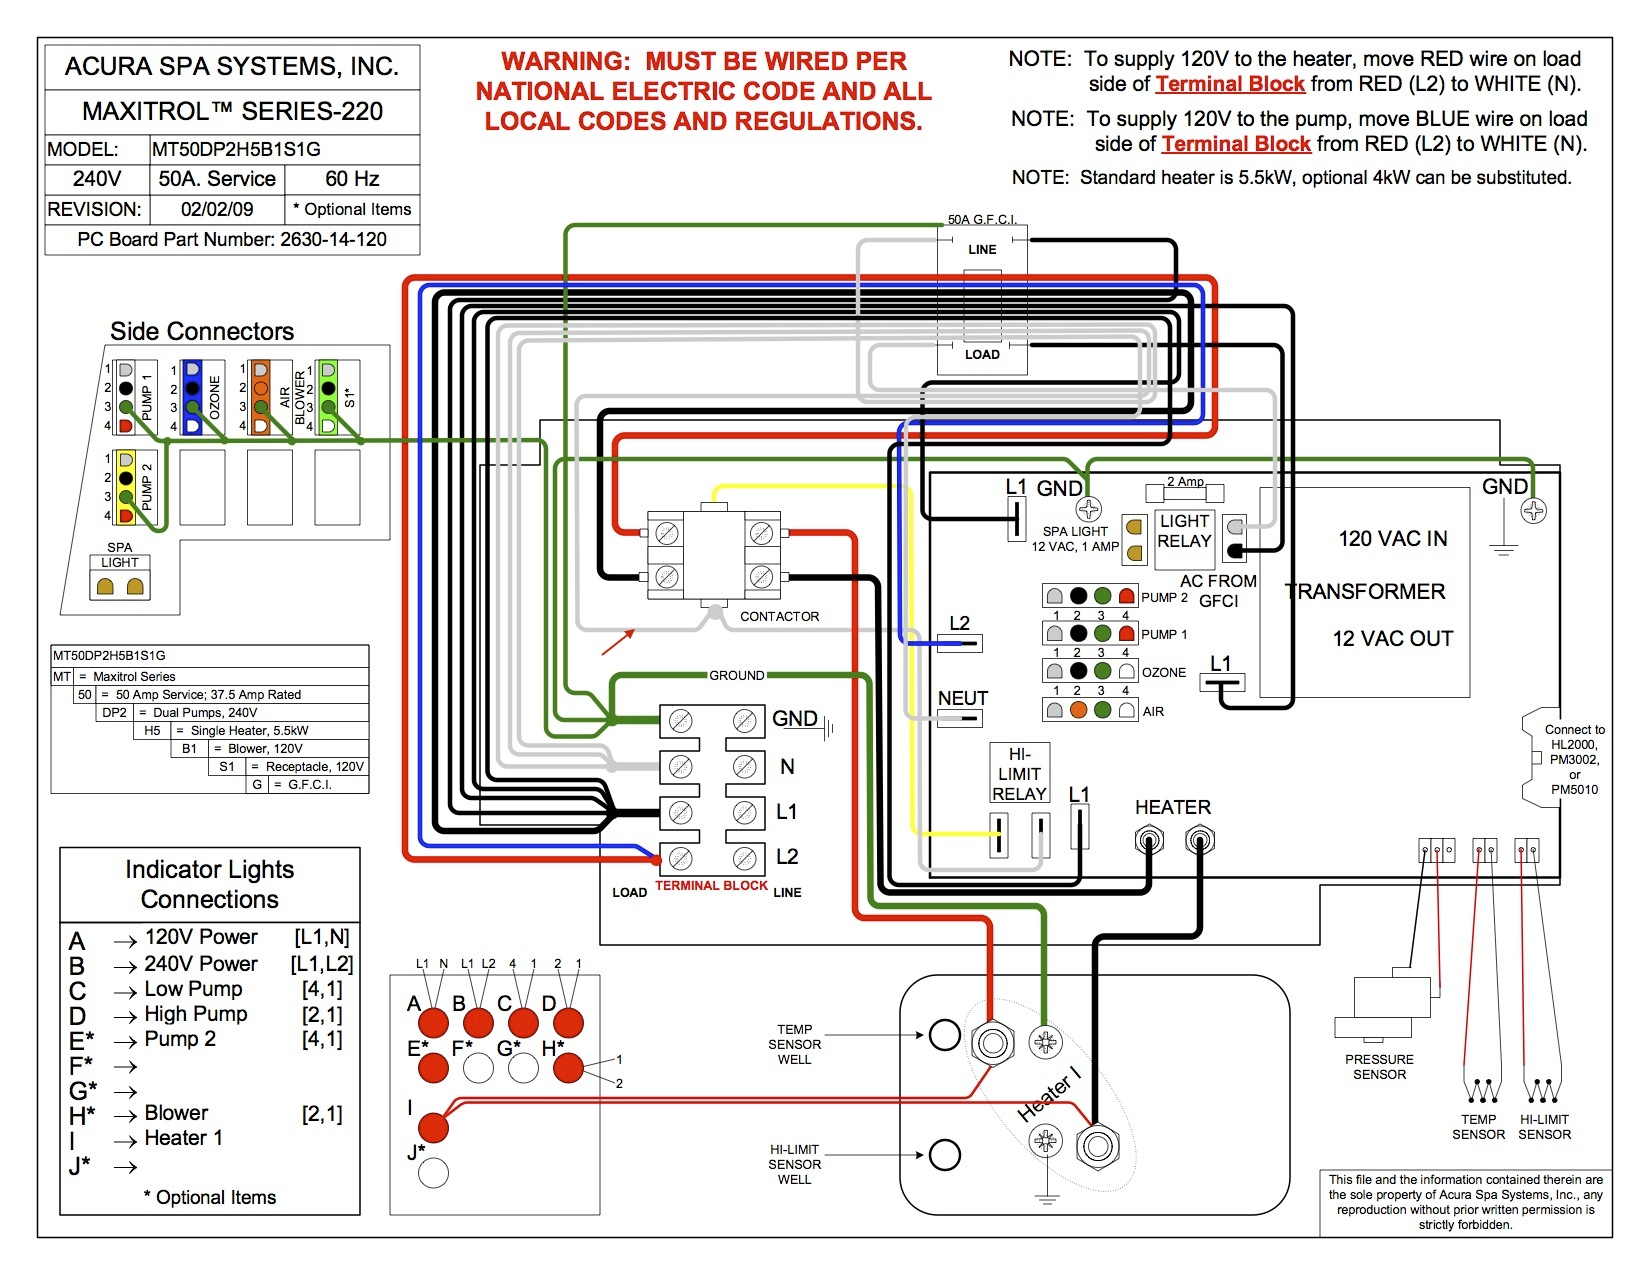 Acura Spa Wiring Diagram MT50DP2H5B1S1G spa pump motor wiring diagram, century motors used in ultra jet hot spring spa wiring diagram at bakdesigns.co